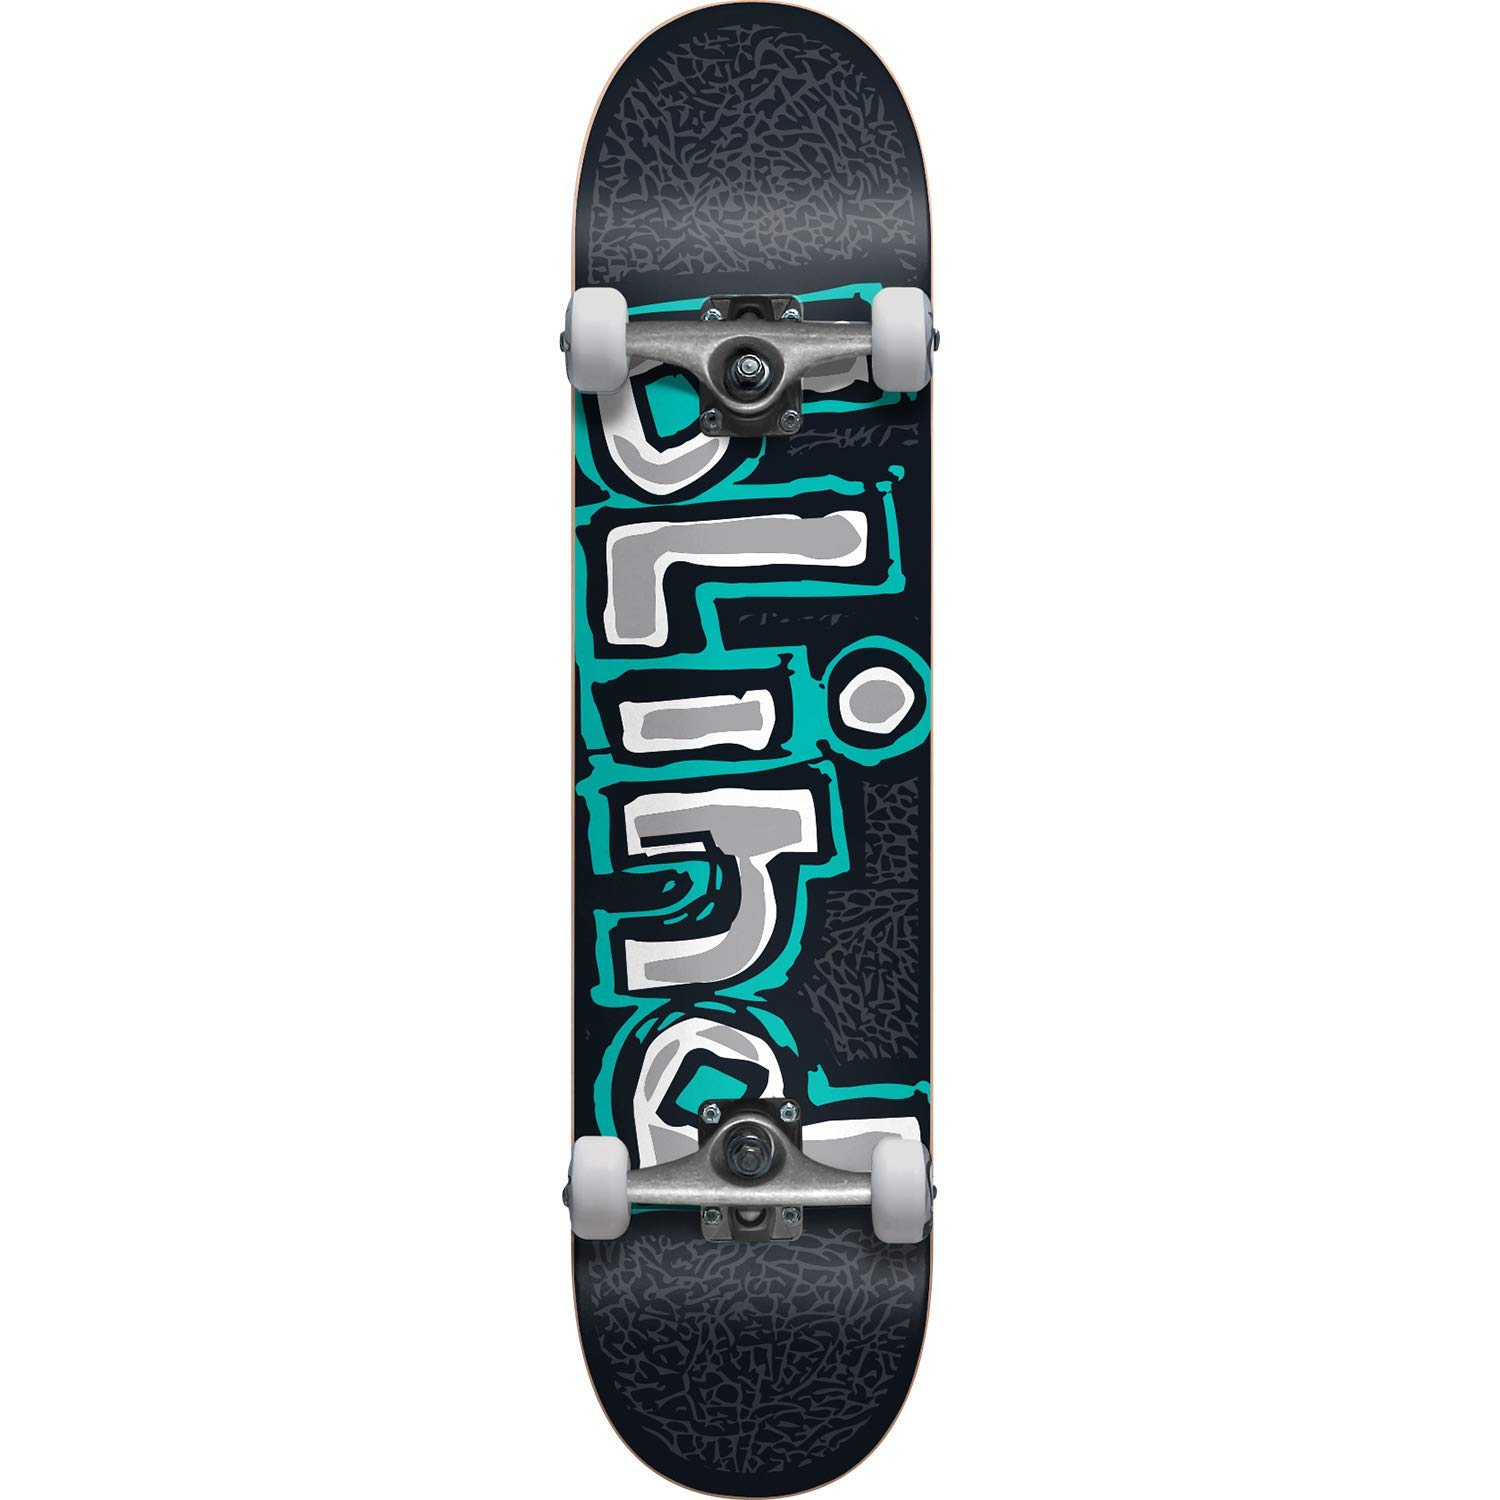 "Blind Skateboards Athletic Skin Black/Teal Mid Complete Skateboards - 7.5"" x 31.1"""